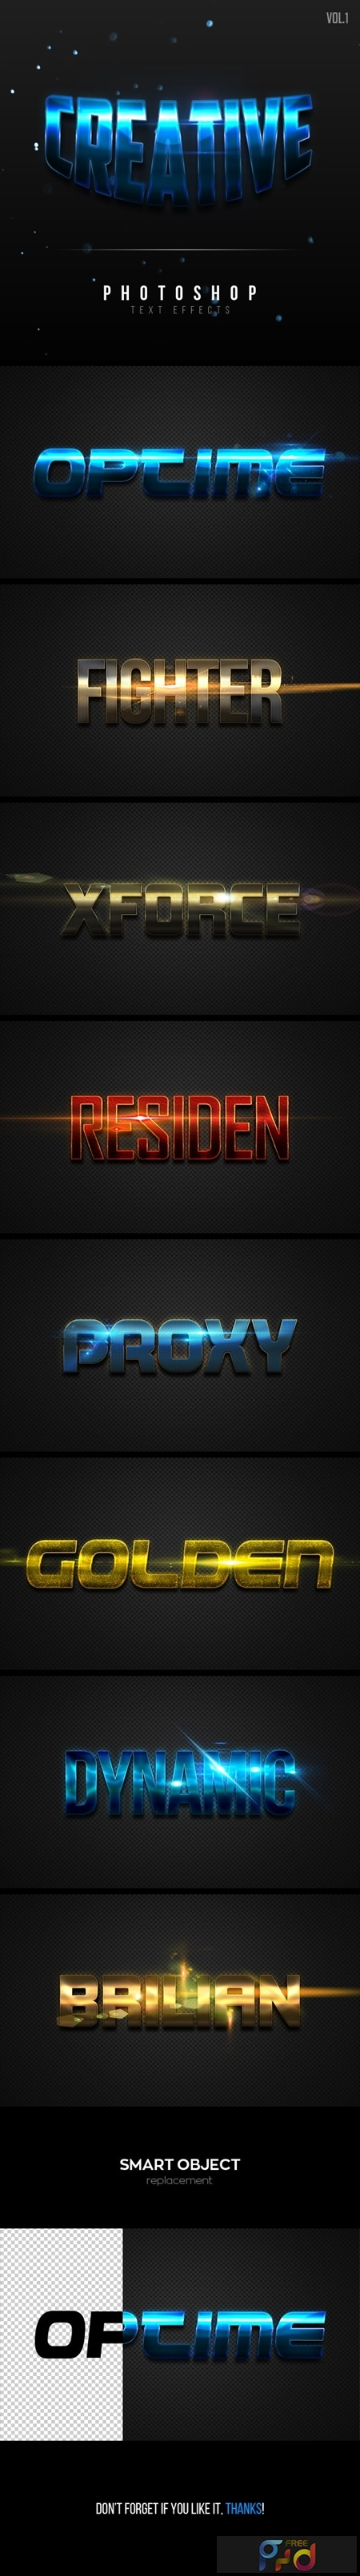 Creative Text Effects Vol.1 24093004 1